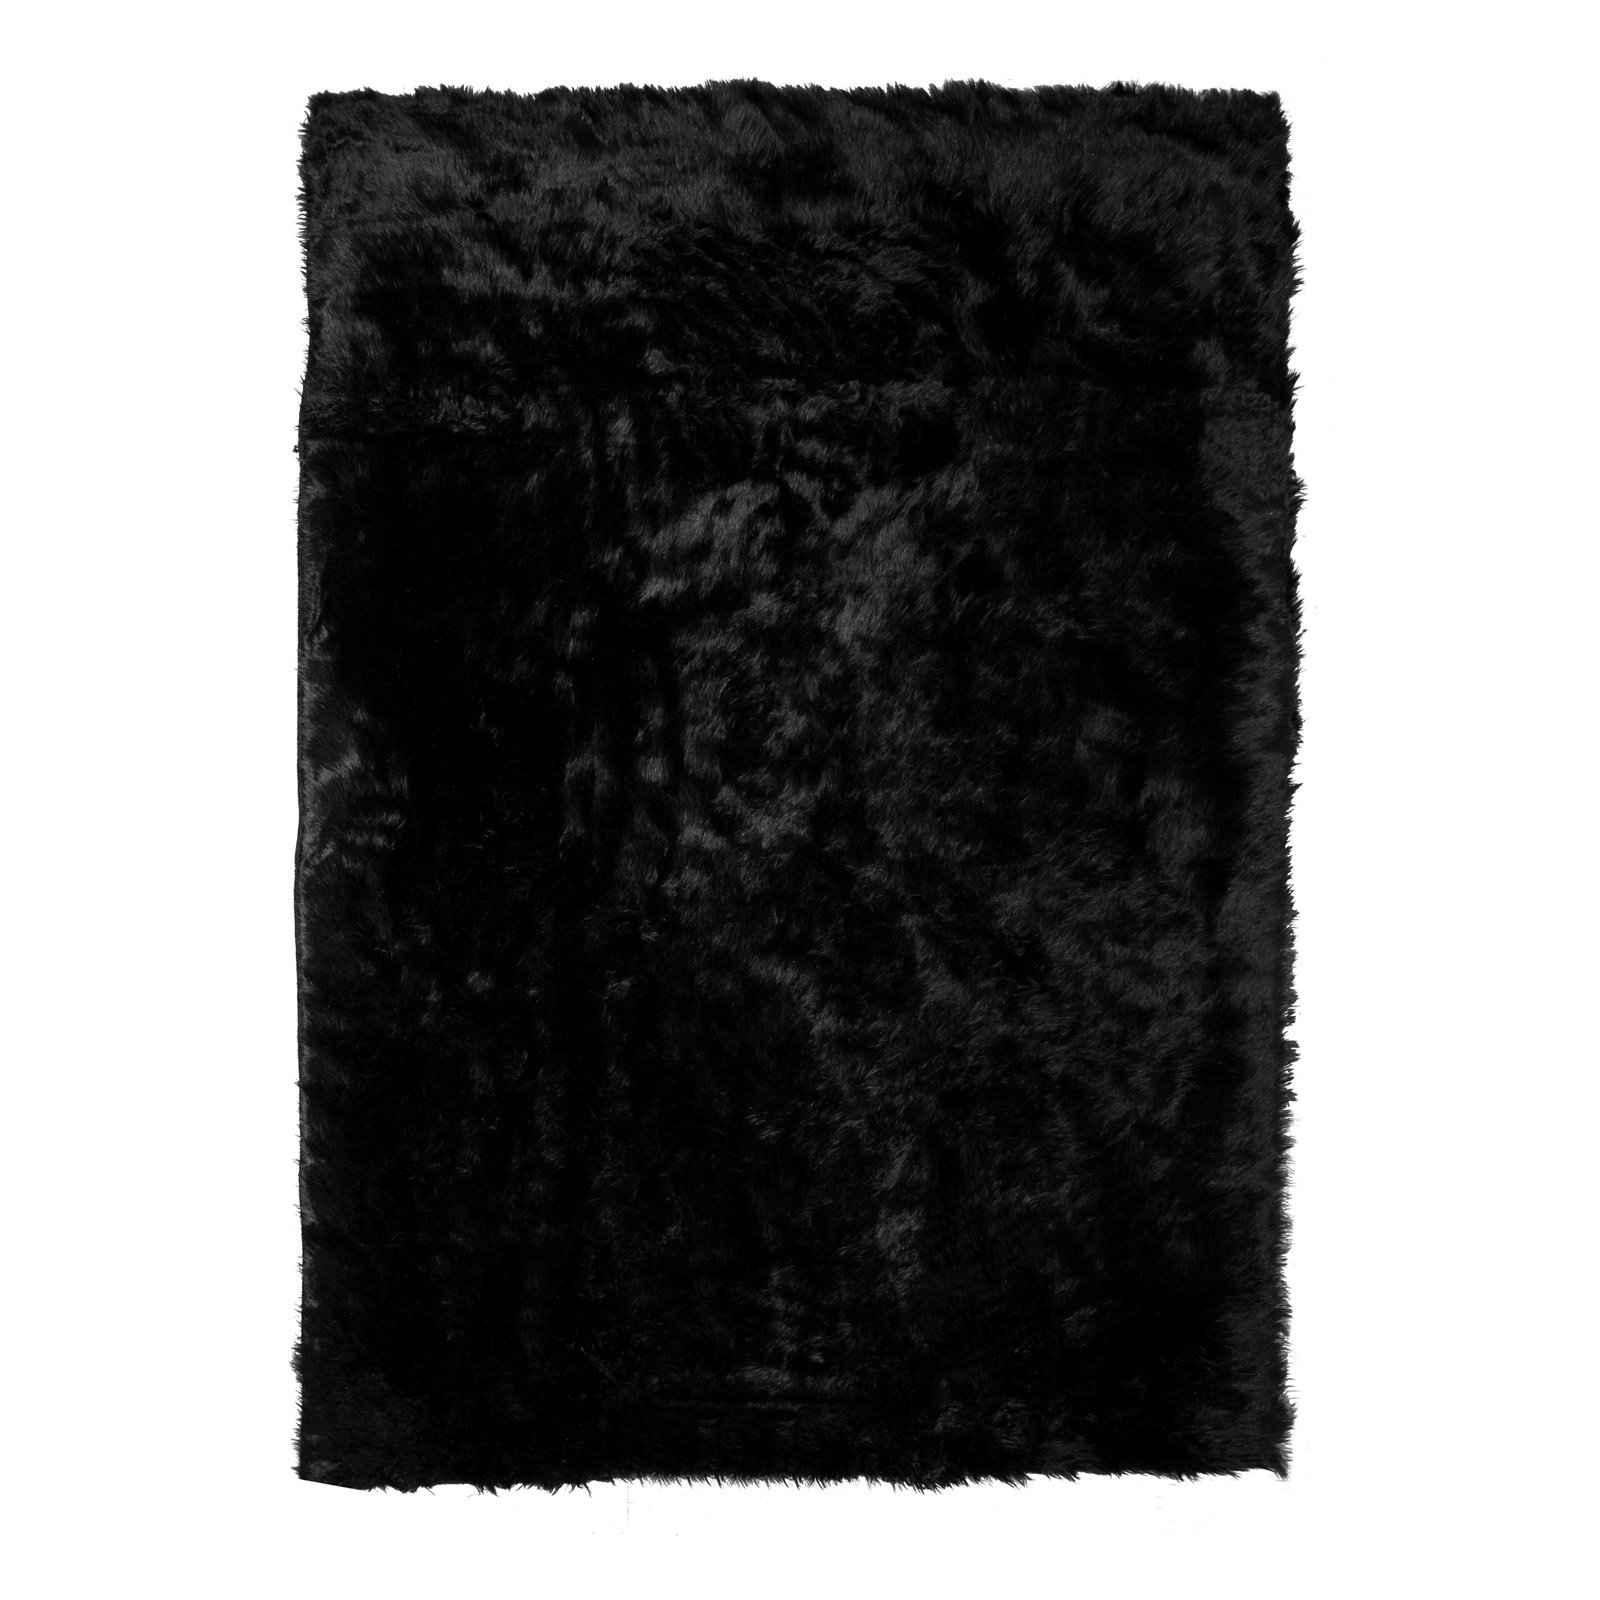 Ailis Faux Sheepskin Fur Area Rug Black Rectangular 5x3 by Glamour Home